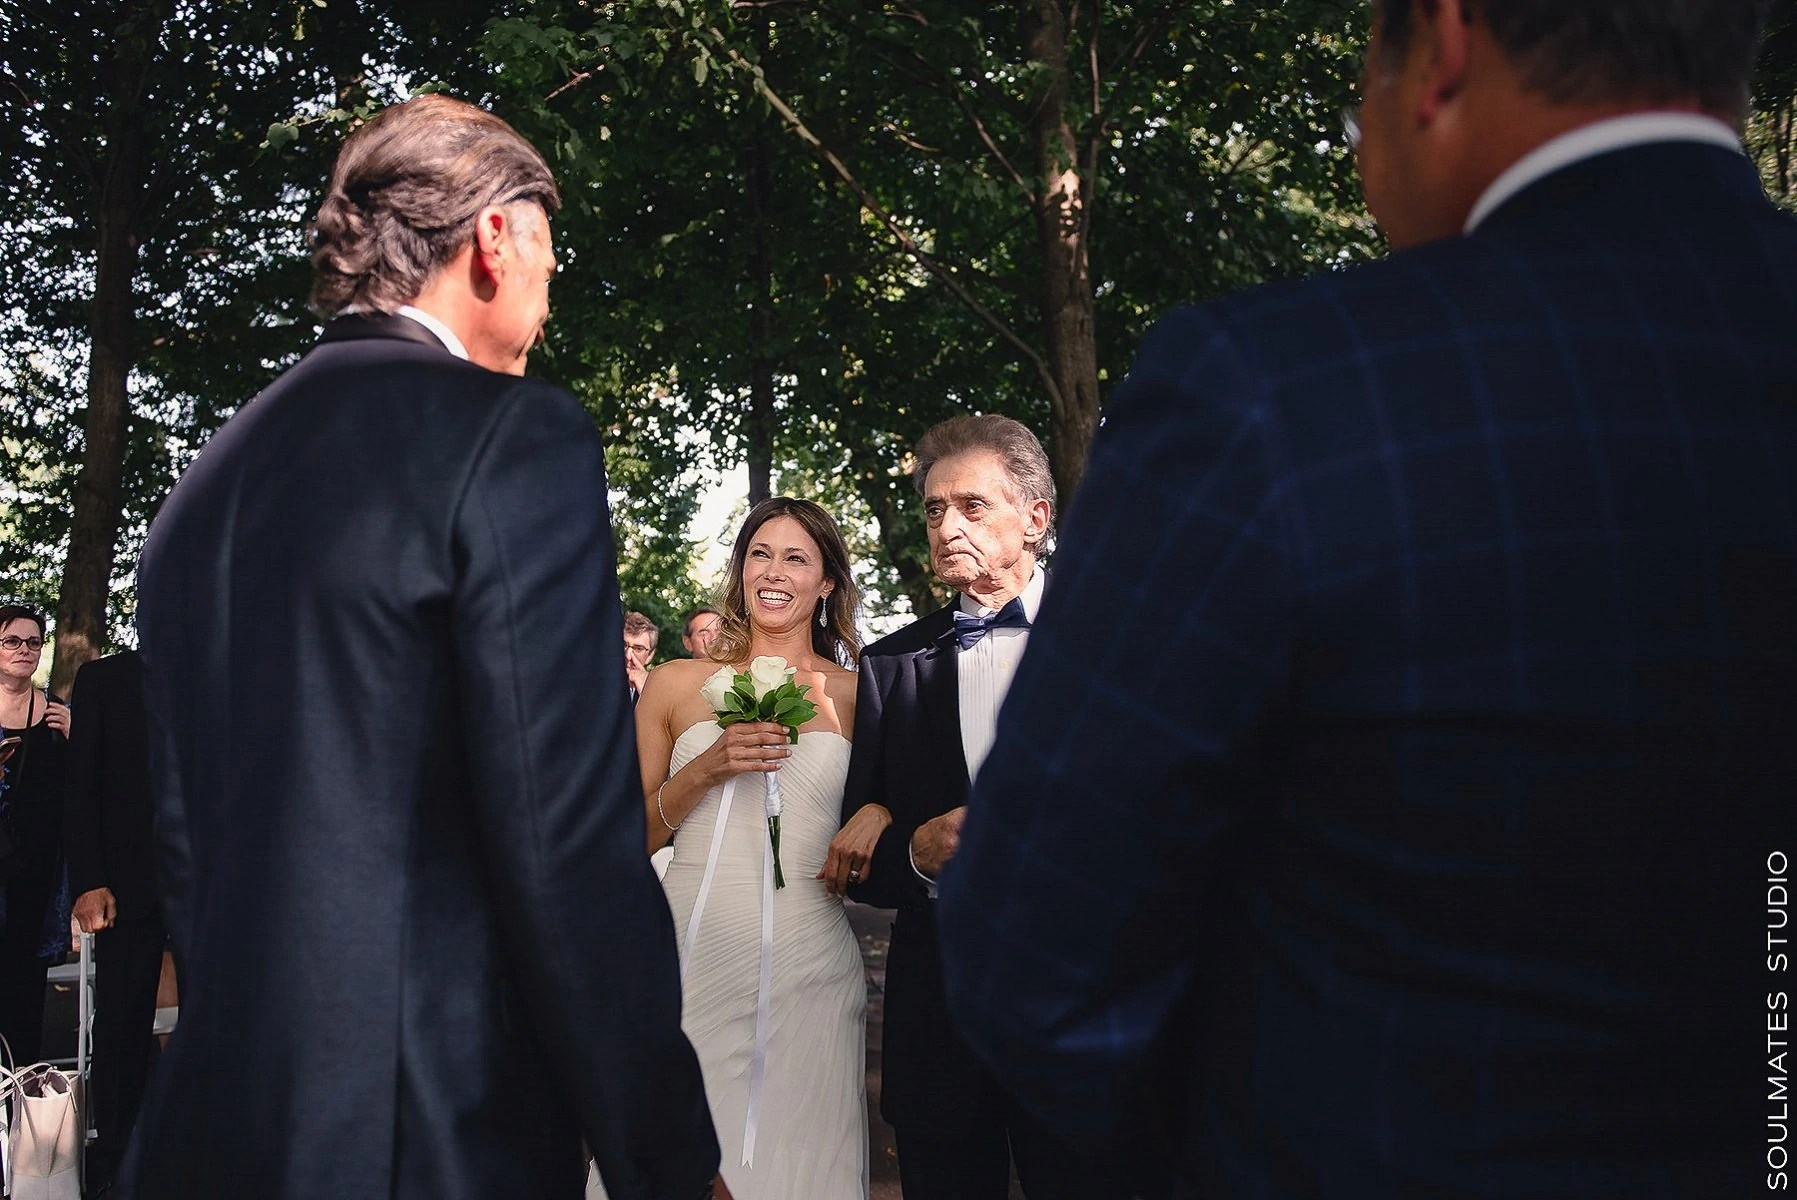 New Leaf at Fort Tryon Park Elopement Wedding